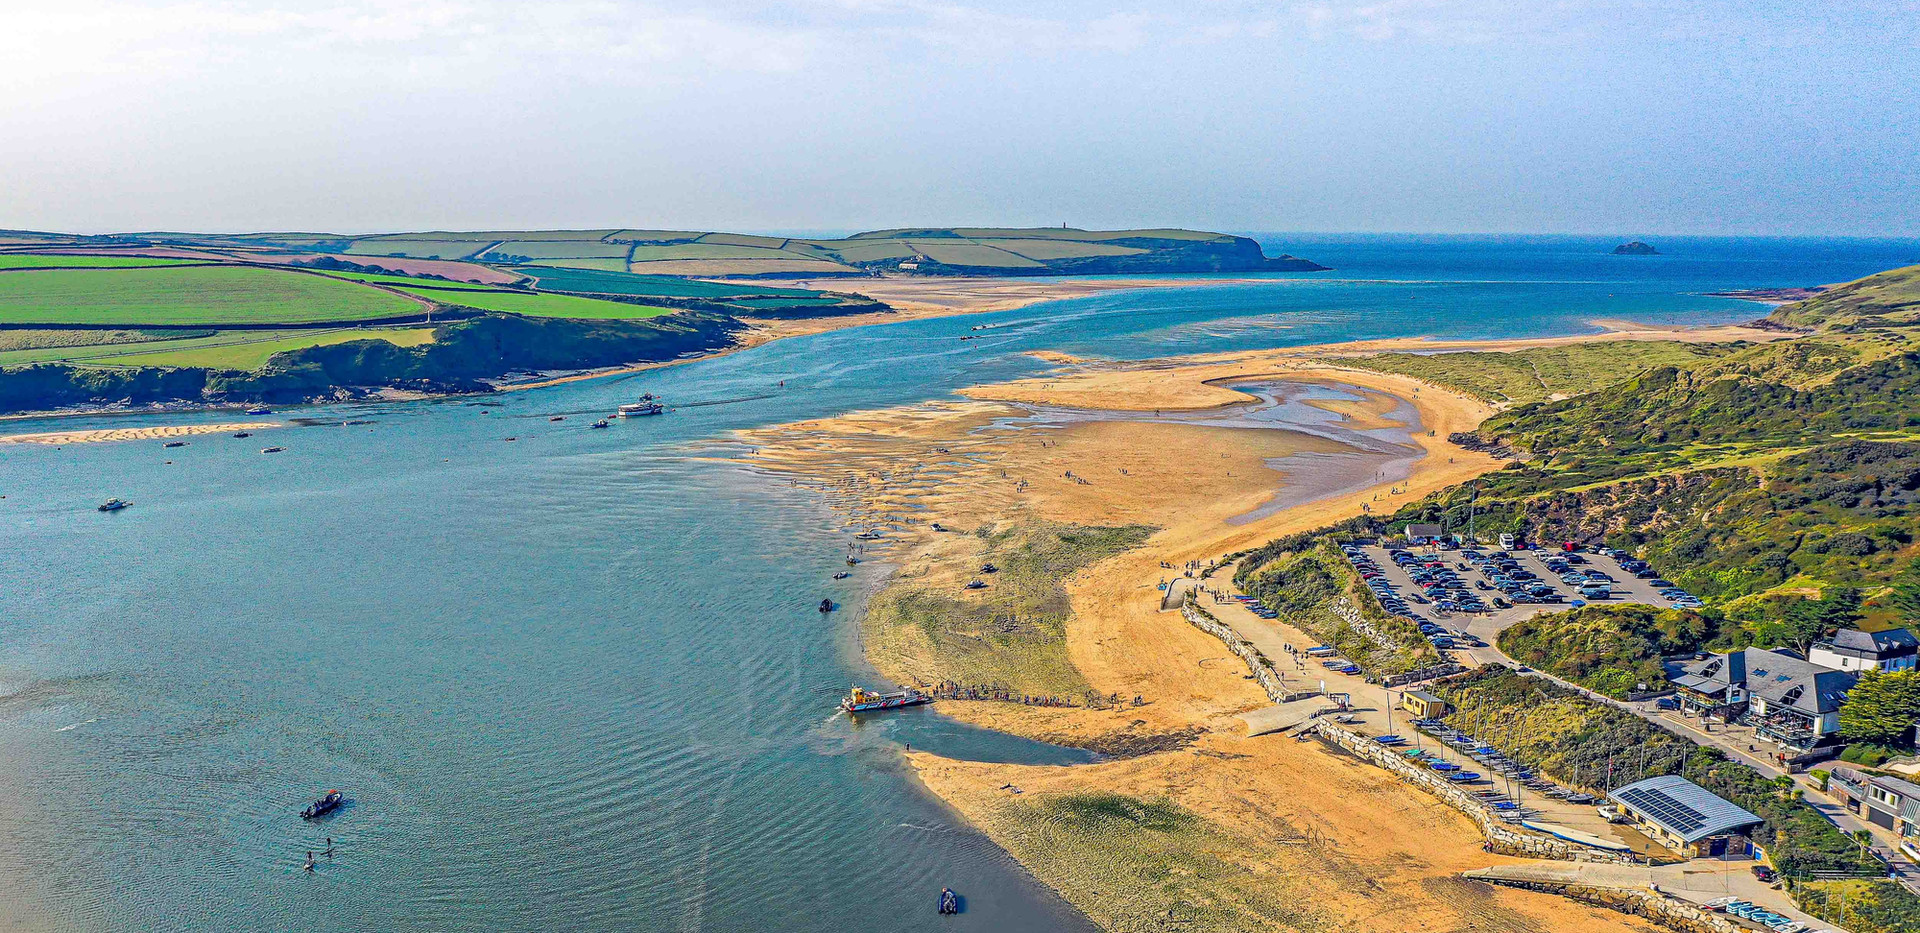 Wadebridge Estuary from the air with a drone. You can see the beaches and river flowing into the sea.